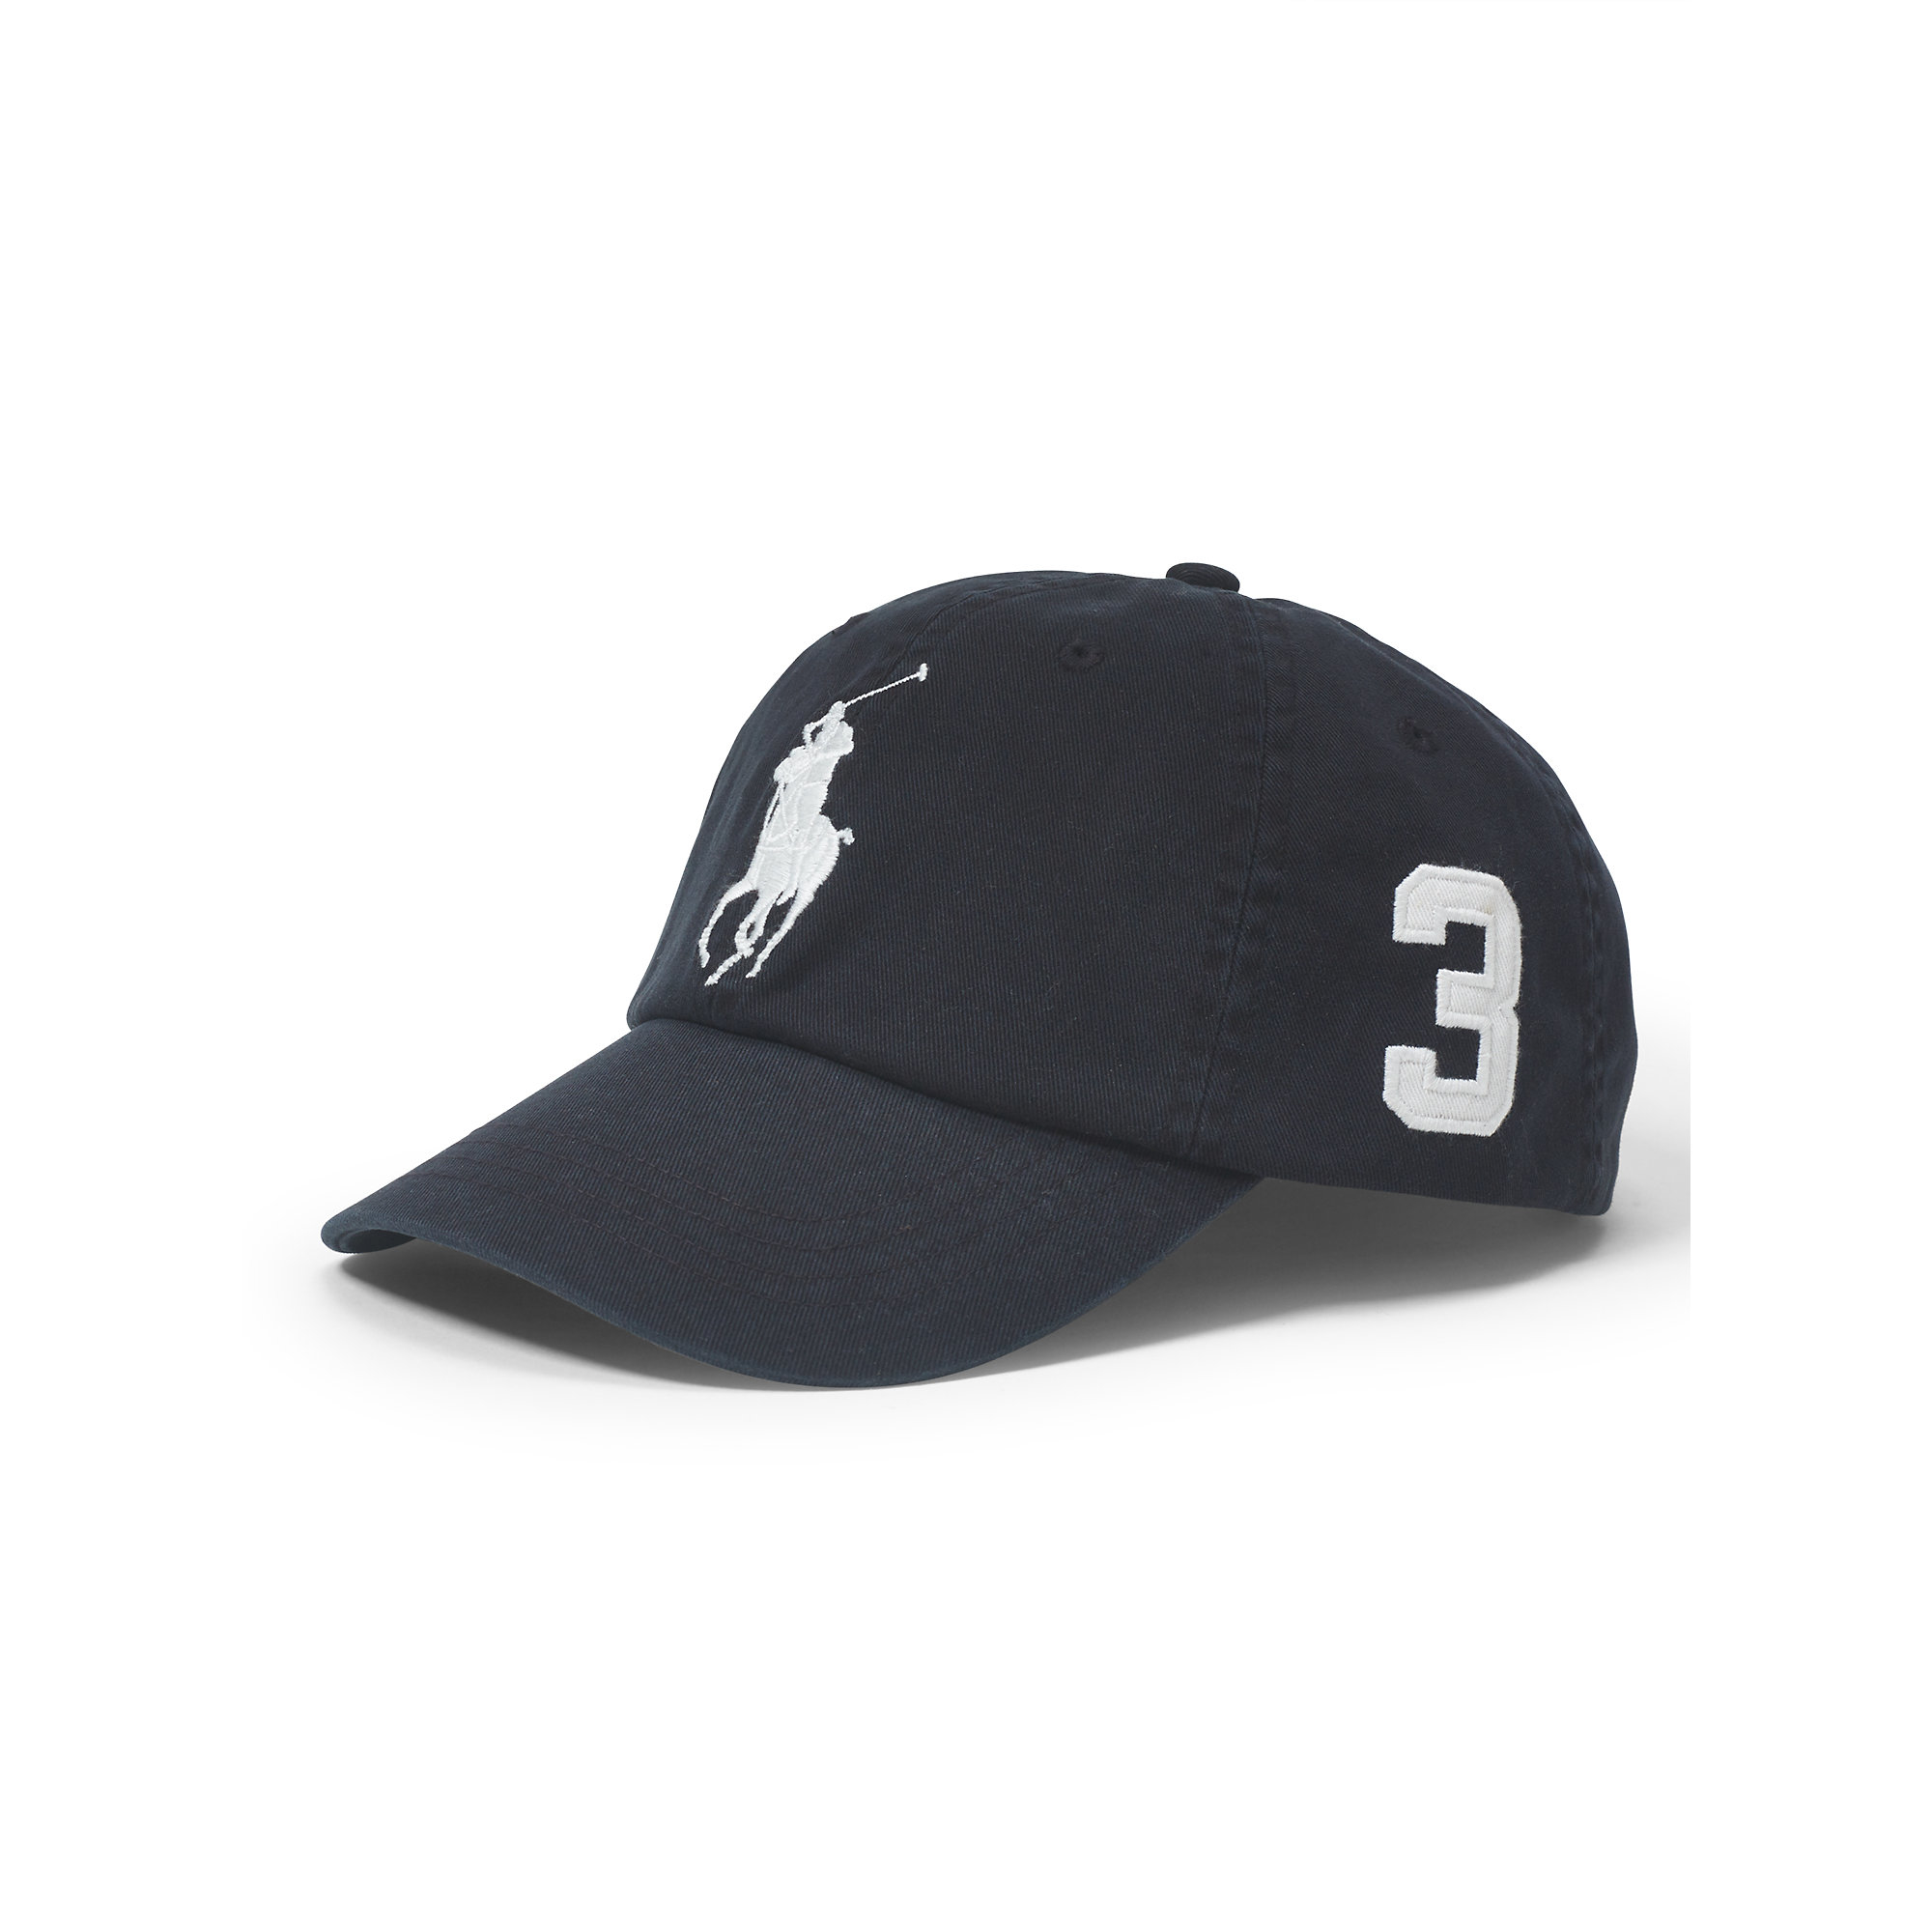 ... promo code for lyst polo ralph lauren big pony chino baseball cap in  black for men ... 66df3aea6775